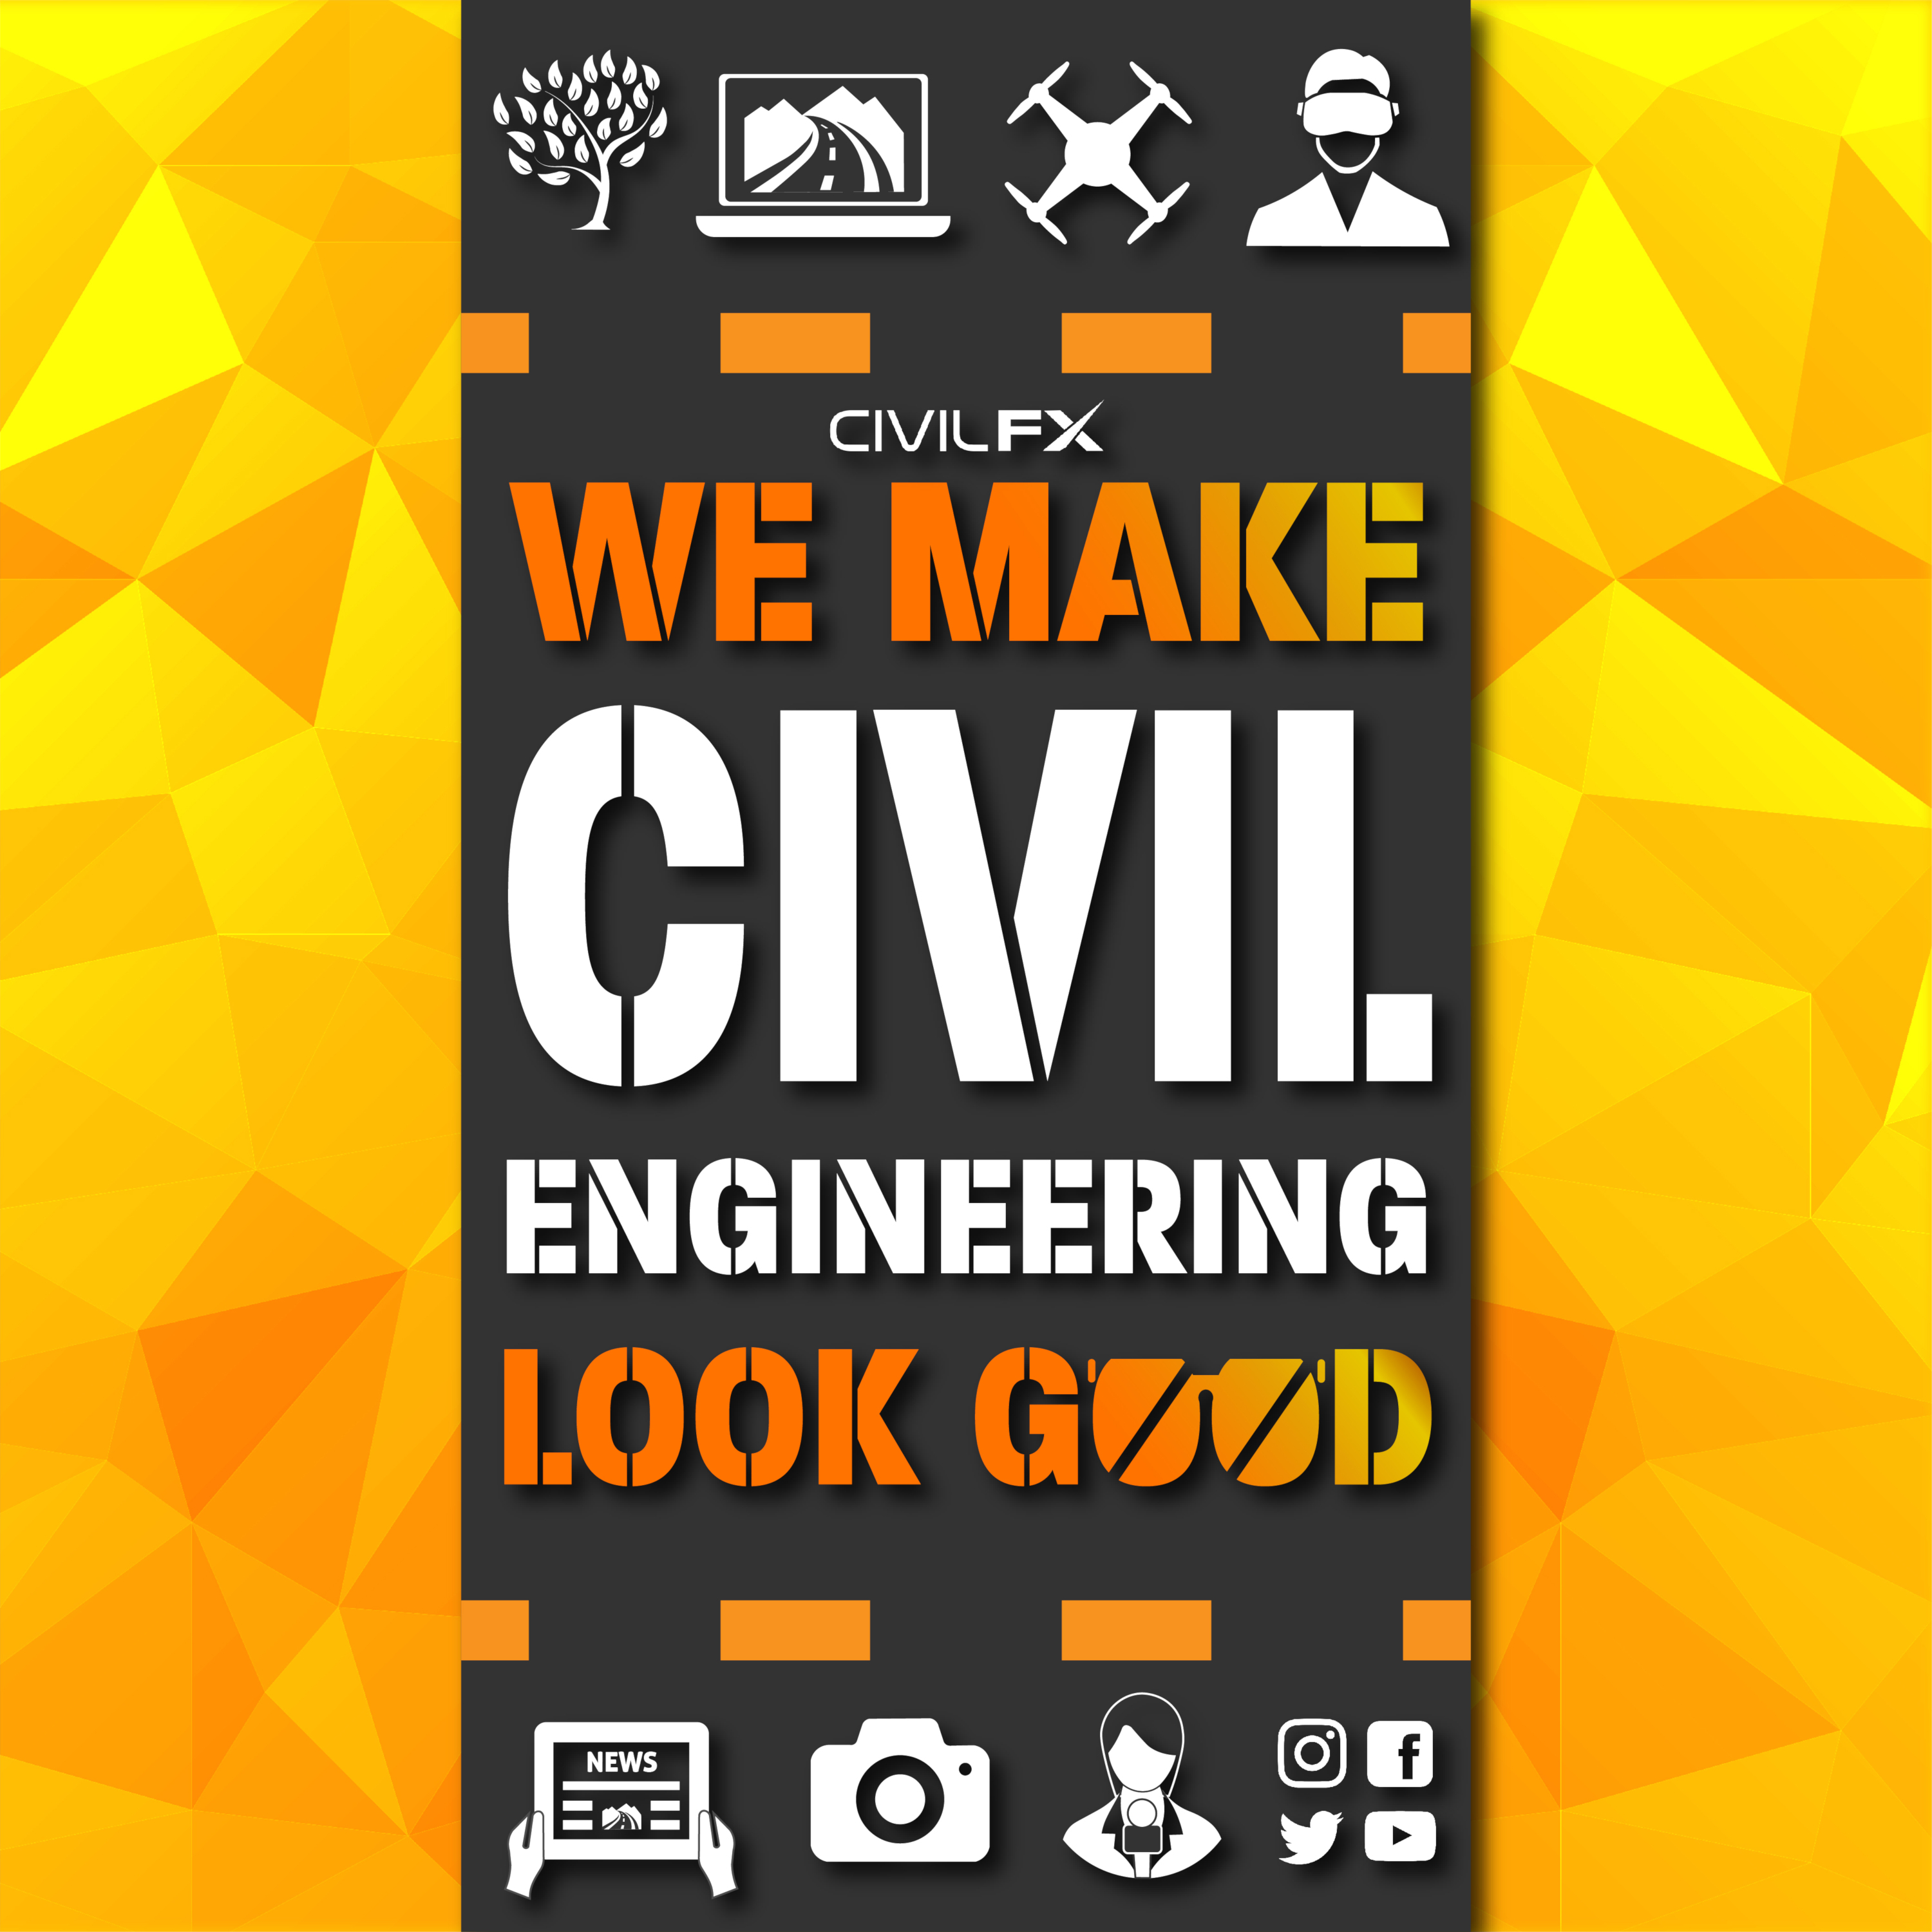 We Make Civil Engineering Look Good Working To Make Transportation And Other Civil Engineer Projects Better Through Outreach 3d Visualization And More Listen Via Stitcher For Podcasts